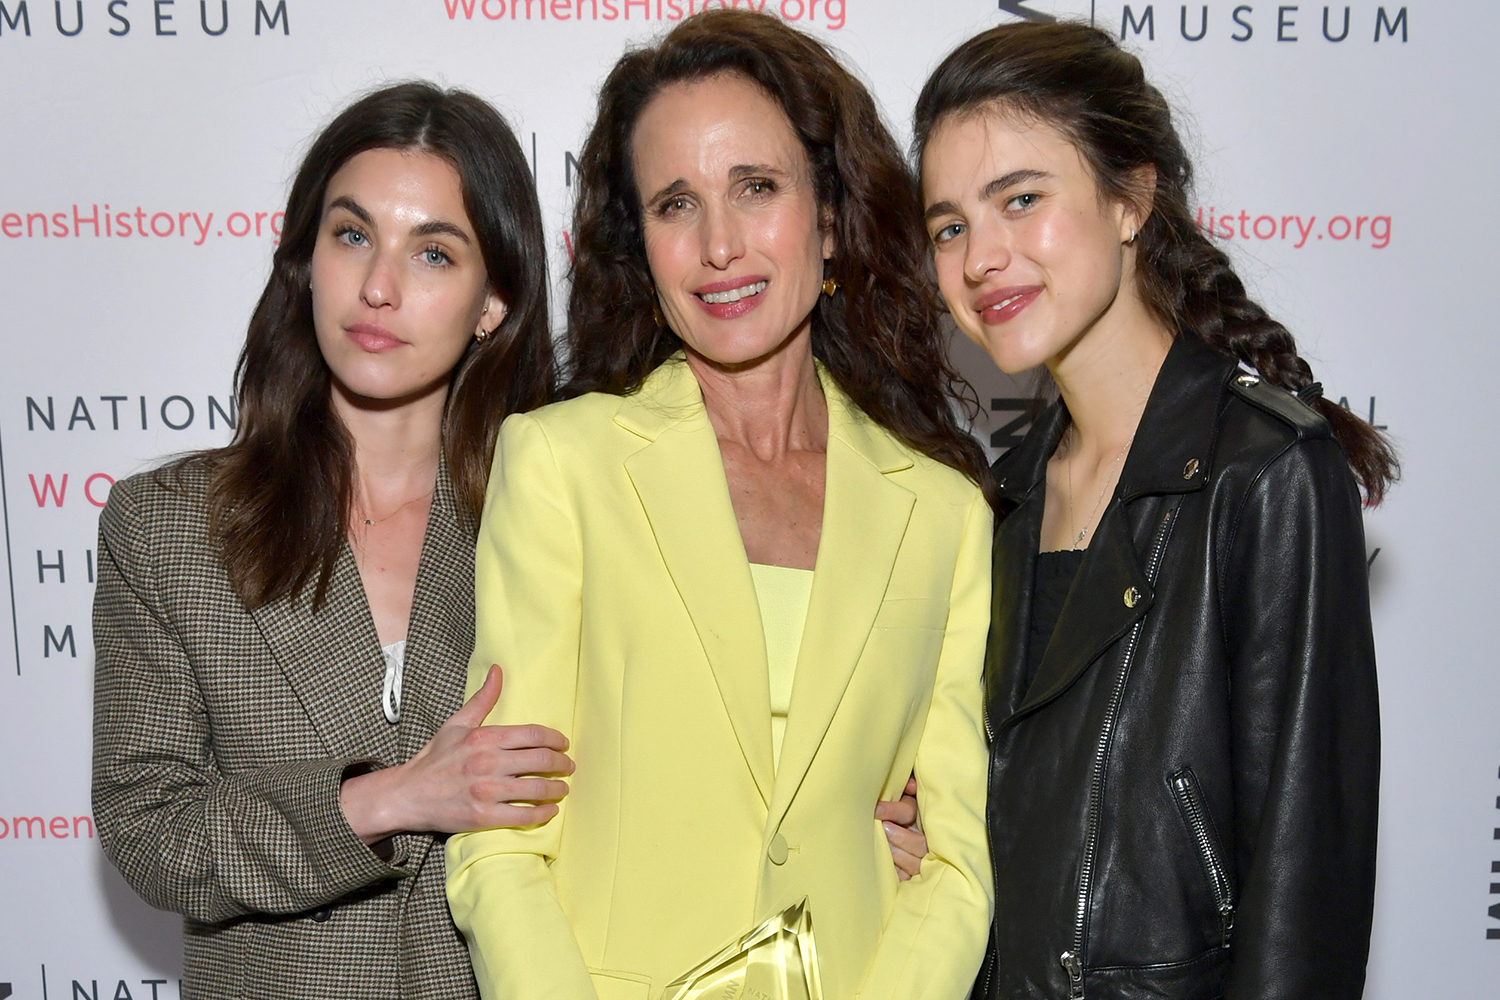 Rainey Qualley, Andie MacDowell, and Margaret Qualley